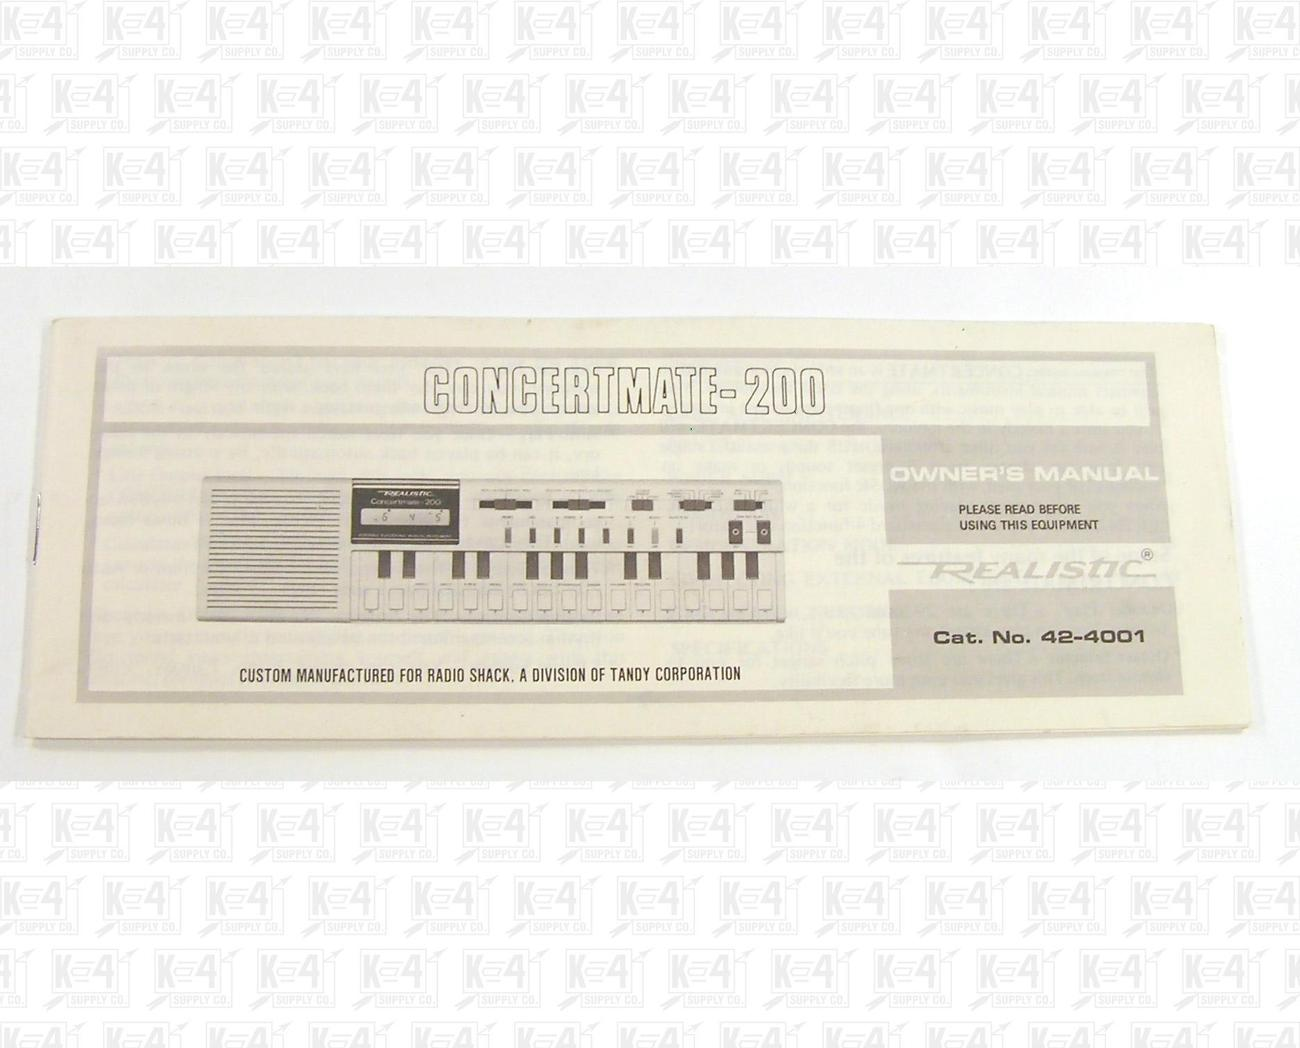 Realistic 42-4001 Concertmate-200 Keyboard Owner's Manual